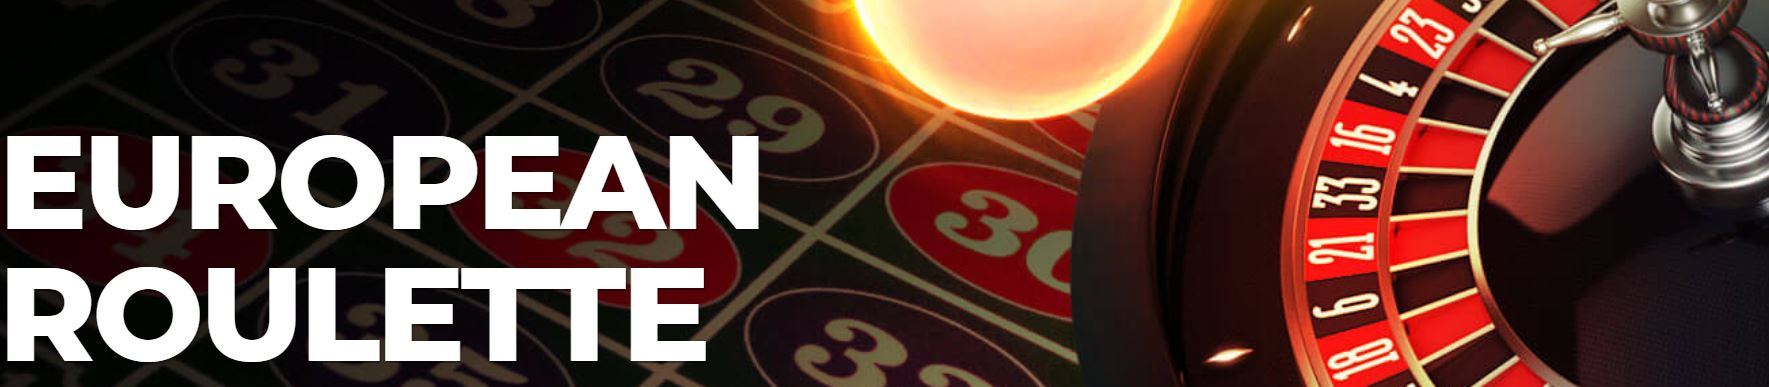 La european roulette está disponible en la mayoría de casinos.